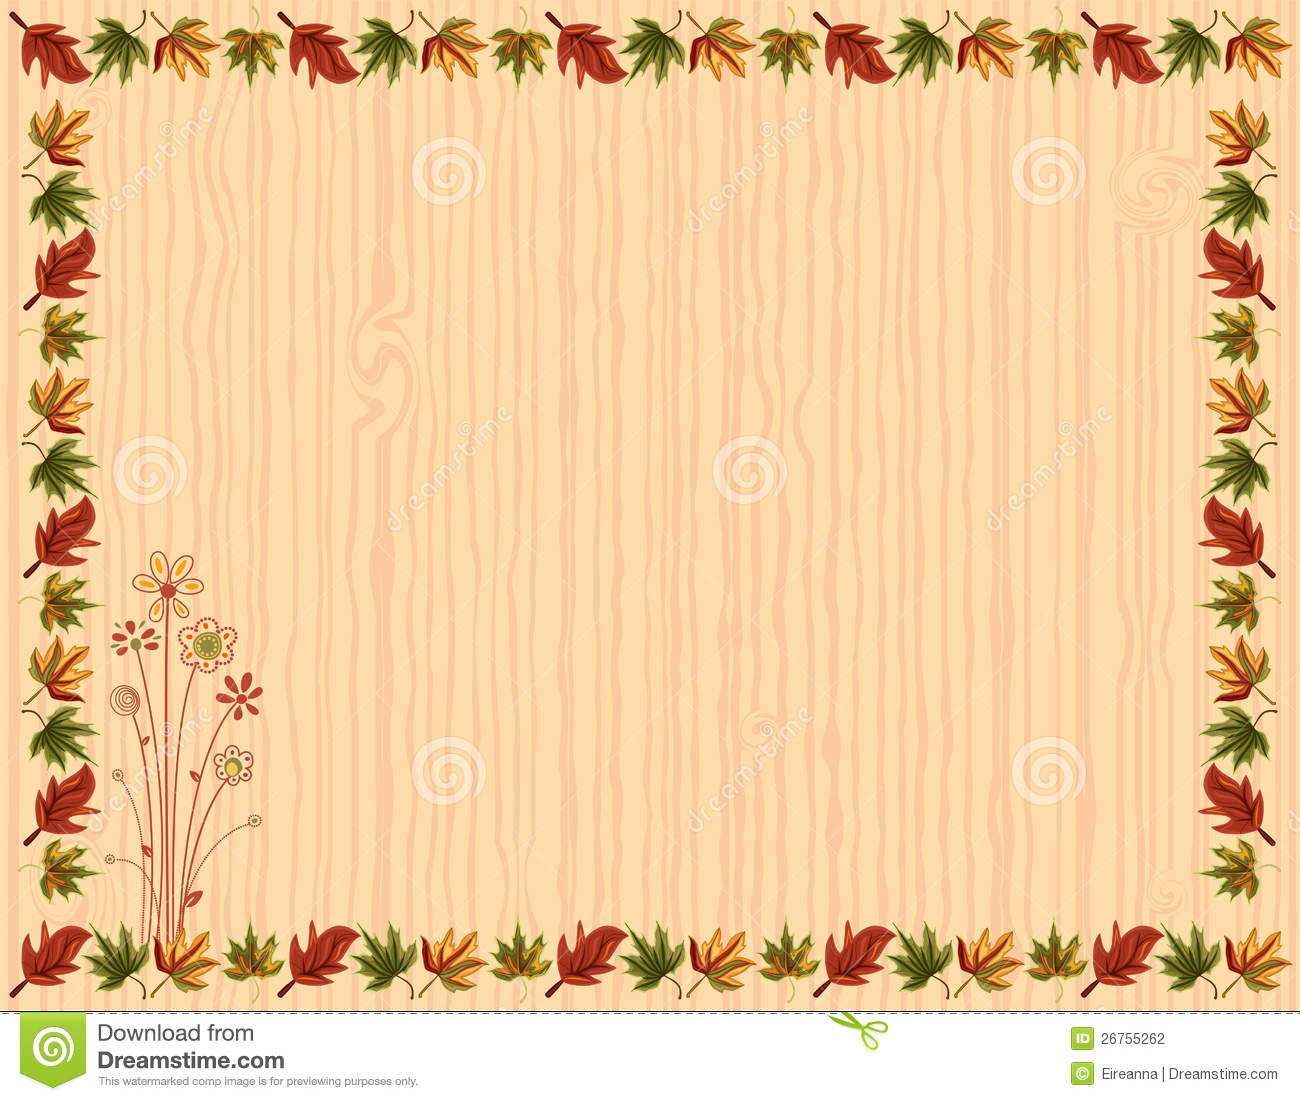 Autumn greeting card with leaves border and floral design vector file